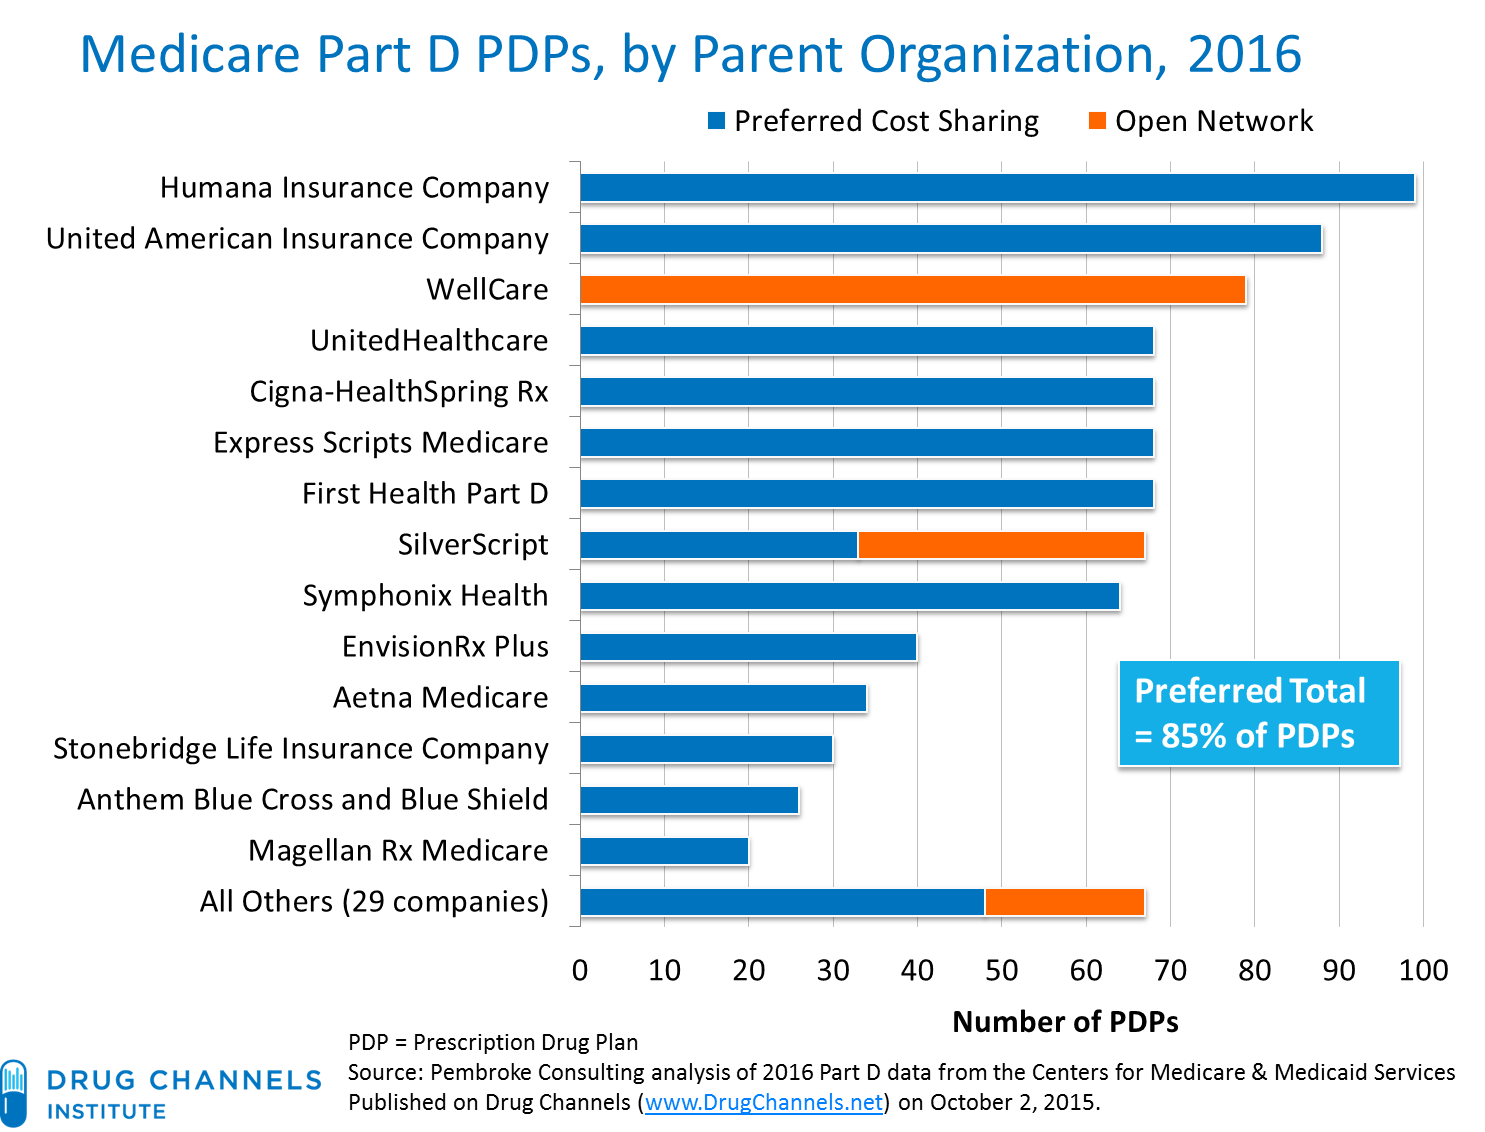 Drug Channels: EXCLUSIVE: In 2016, 85% of Medicare Part D